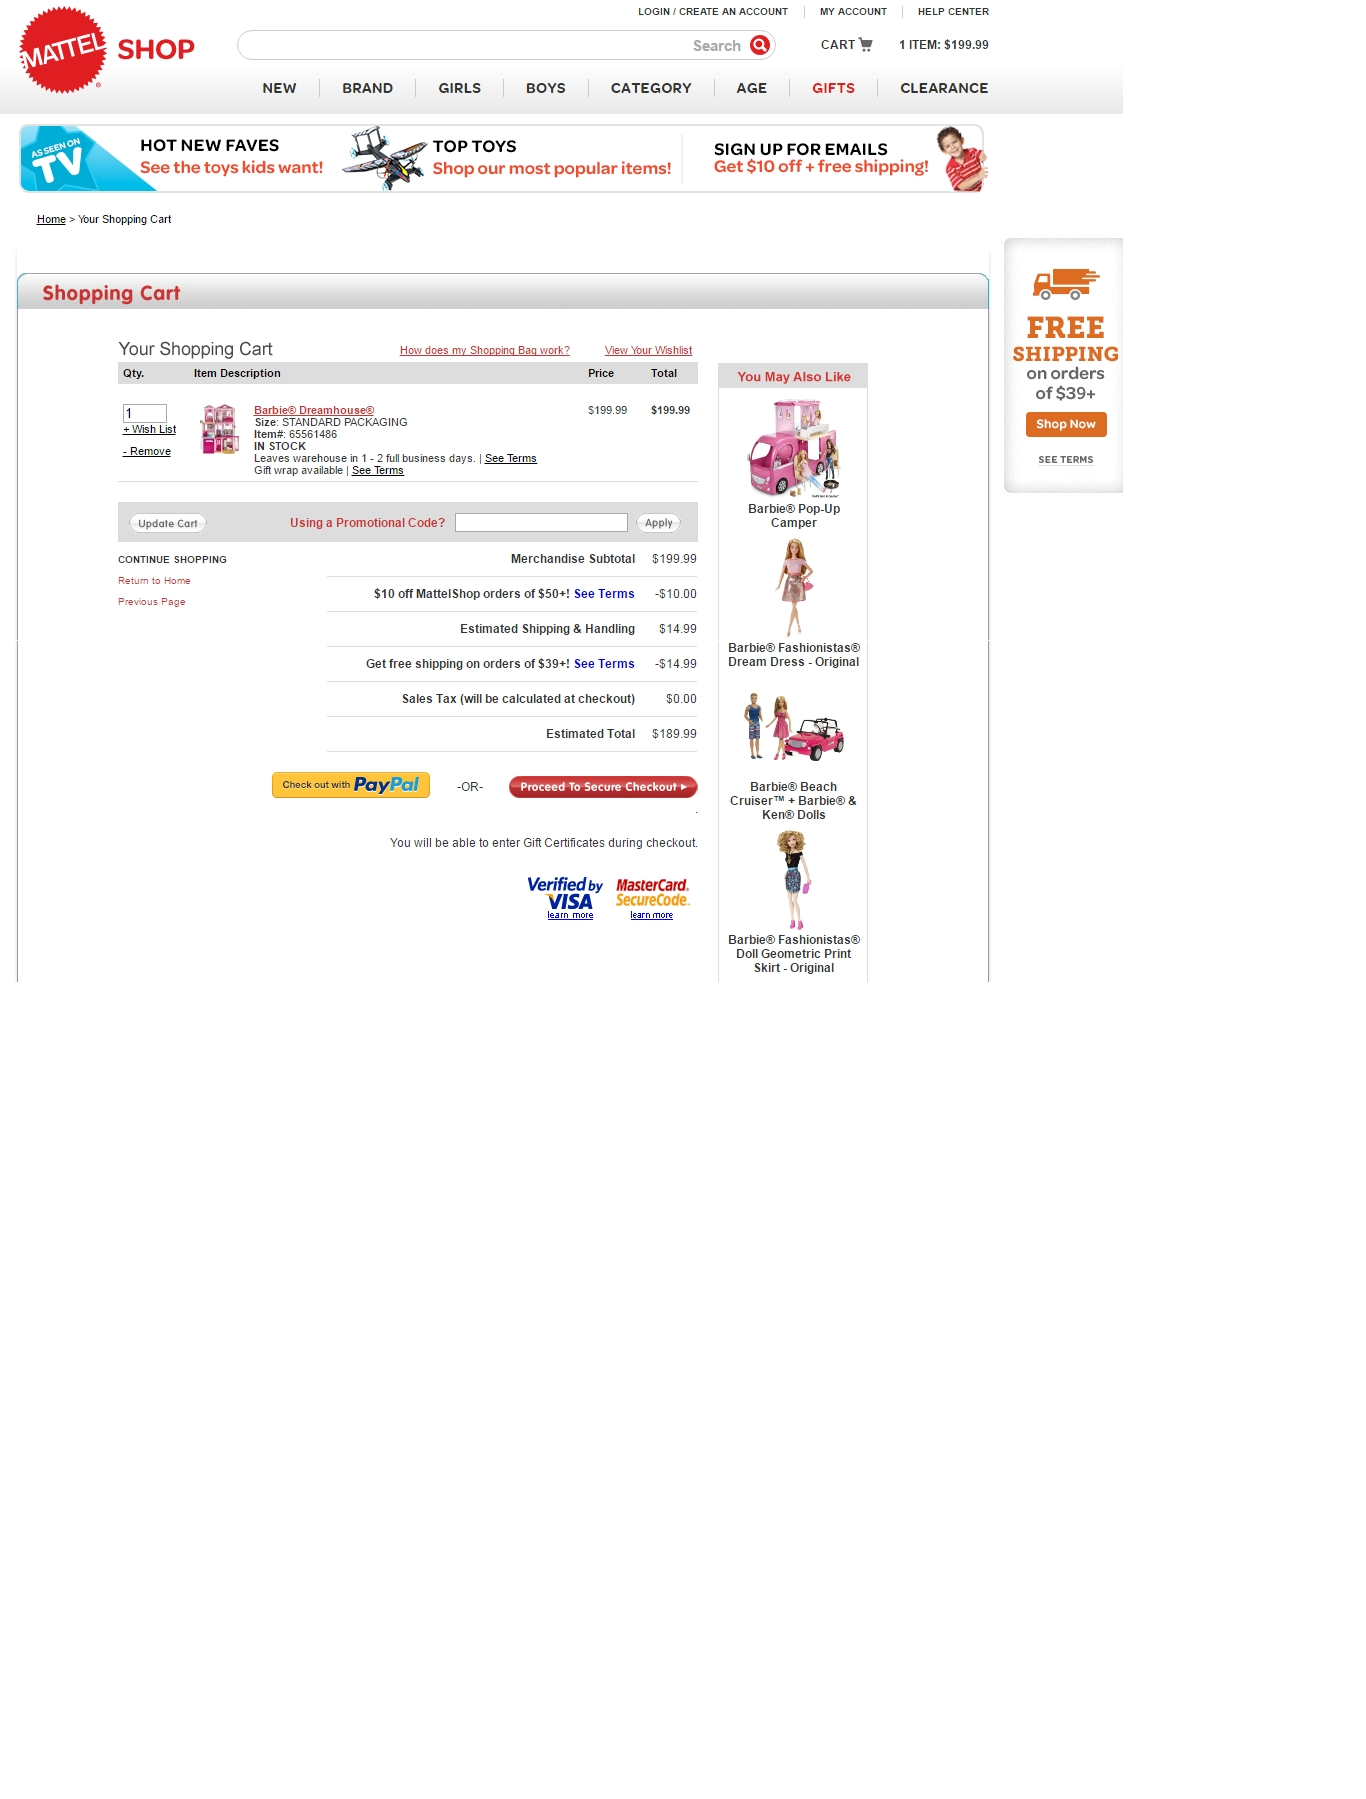 Mattel outlet coupons